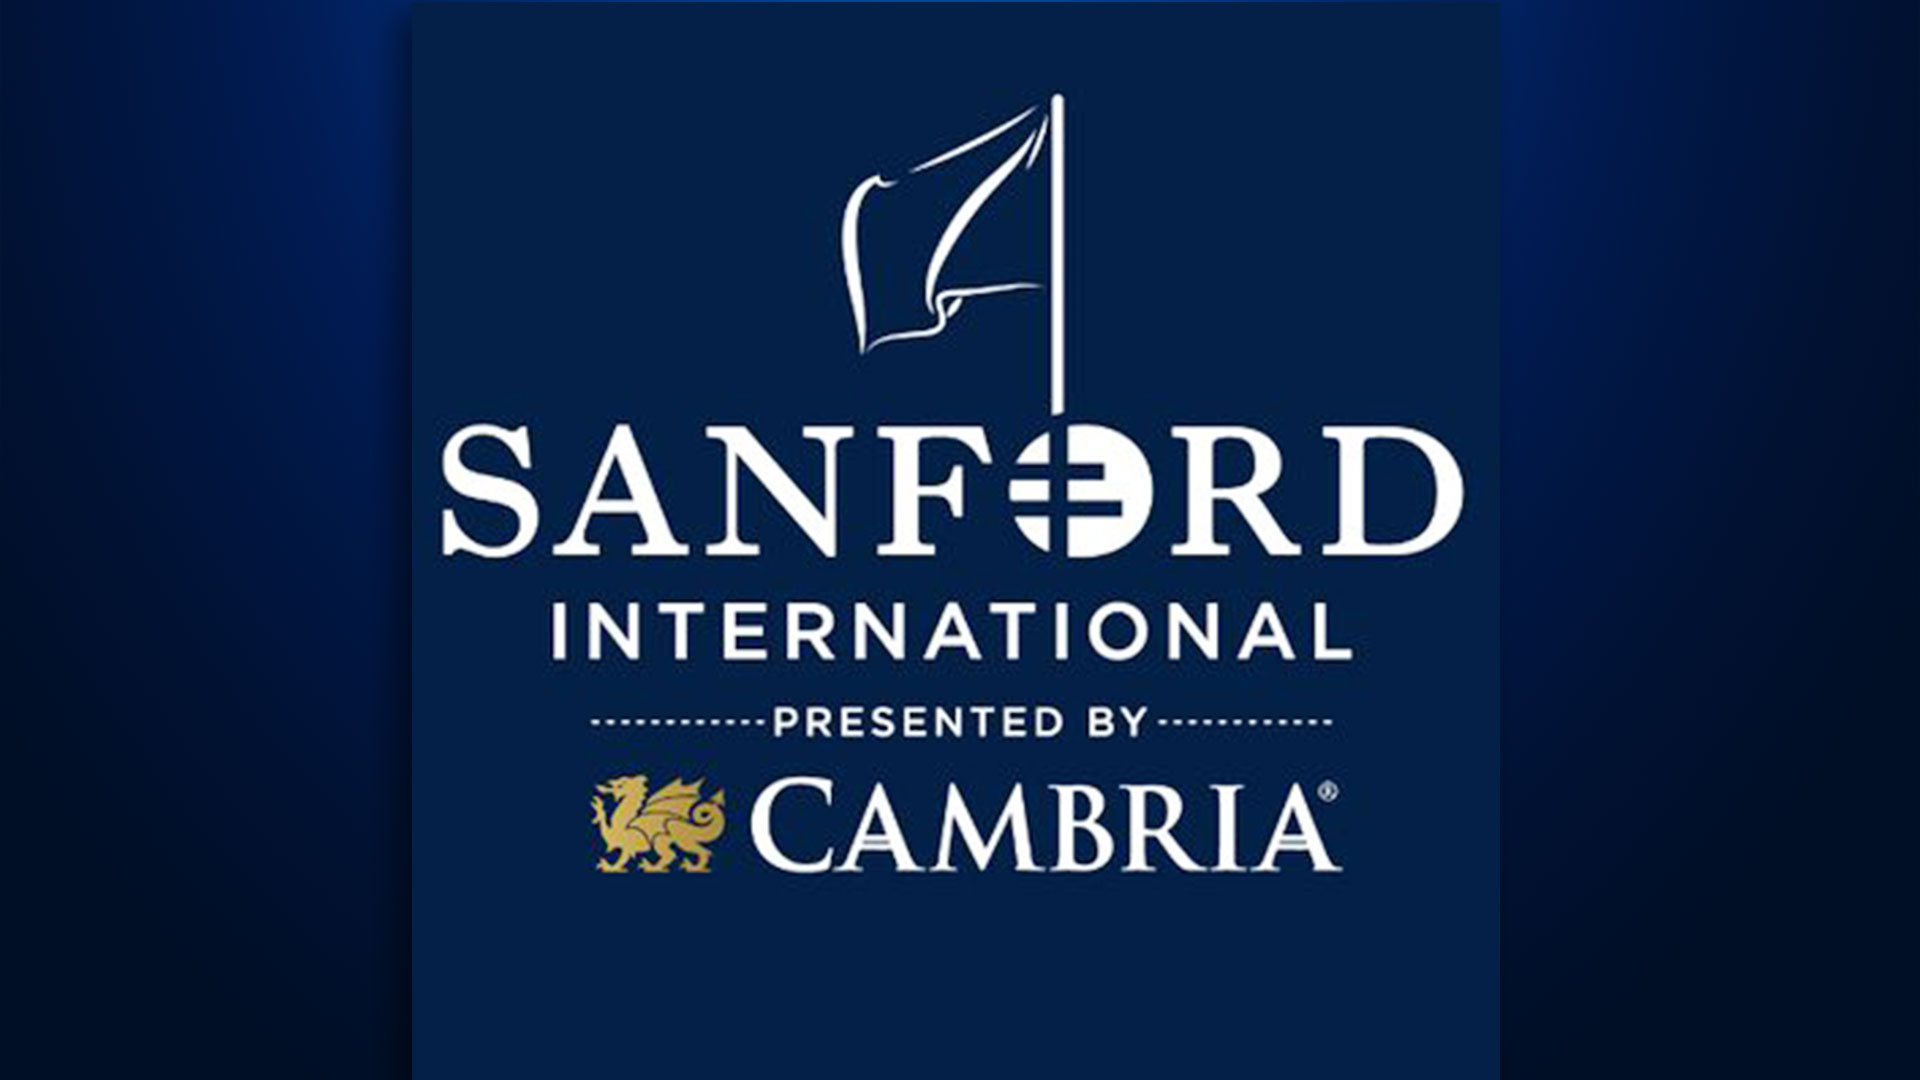 Sanford International Officials Move Public Parking Location